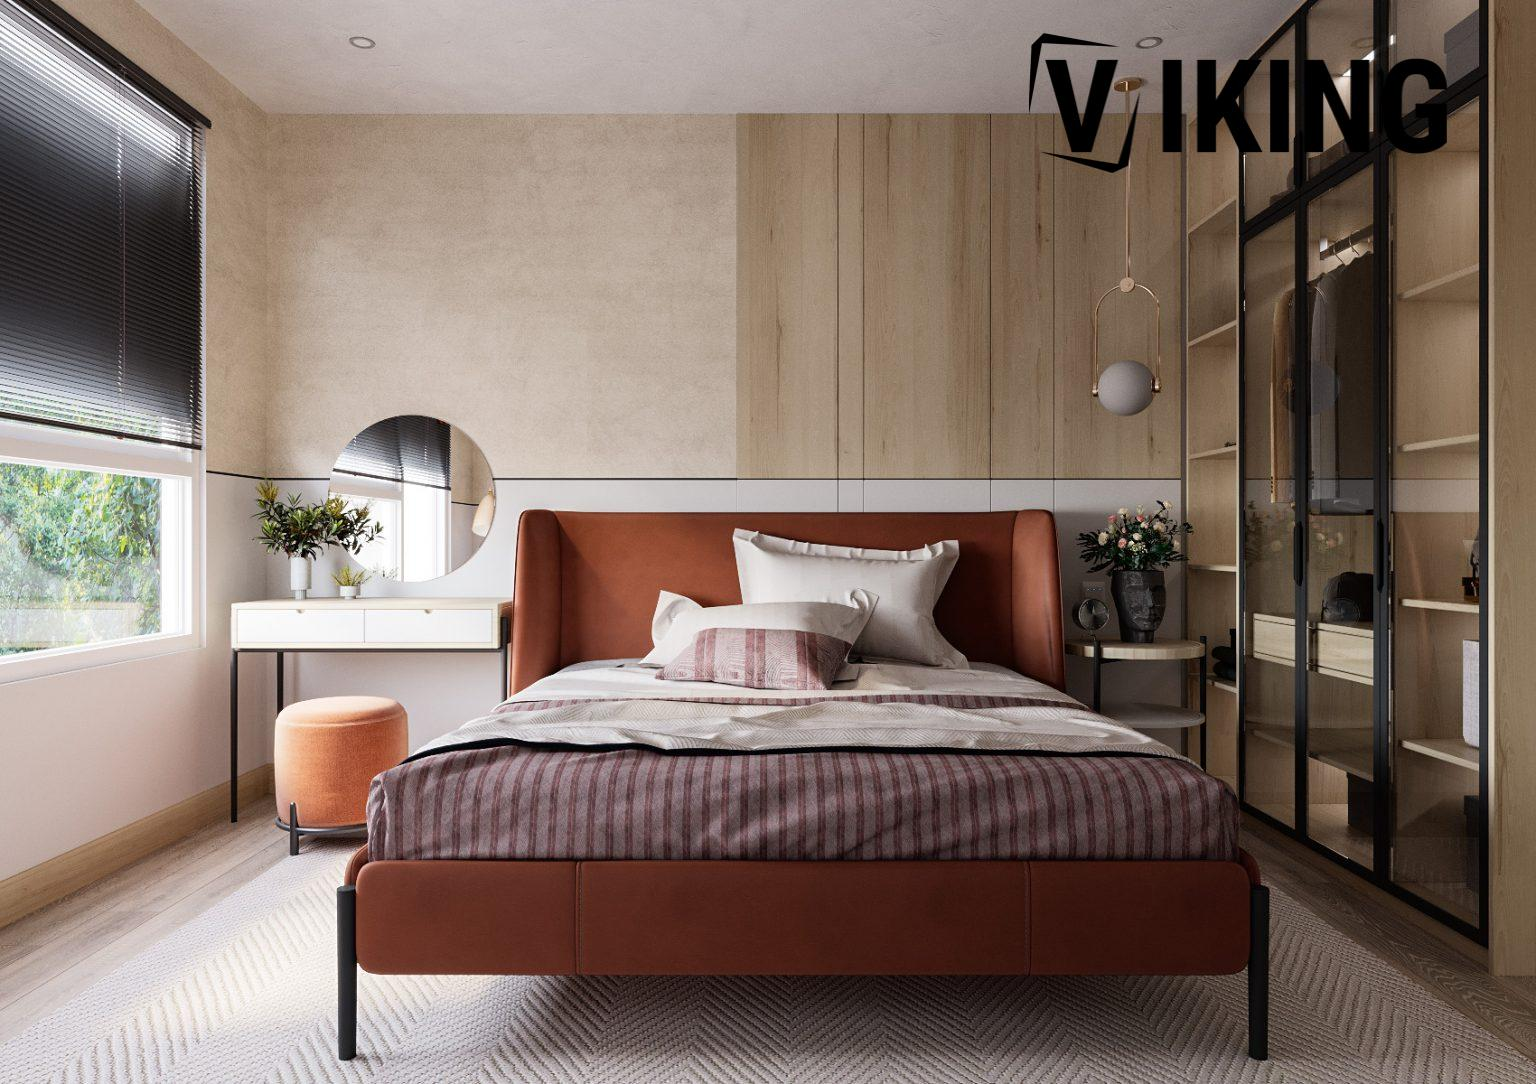 3503.Bedroom Scene 3dsmax File free download by Tuan An 1 1536x1084 1